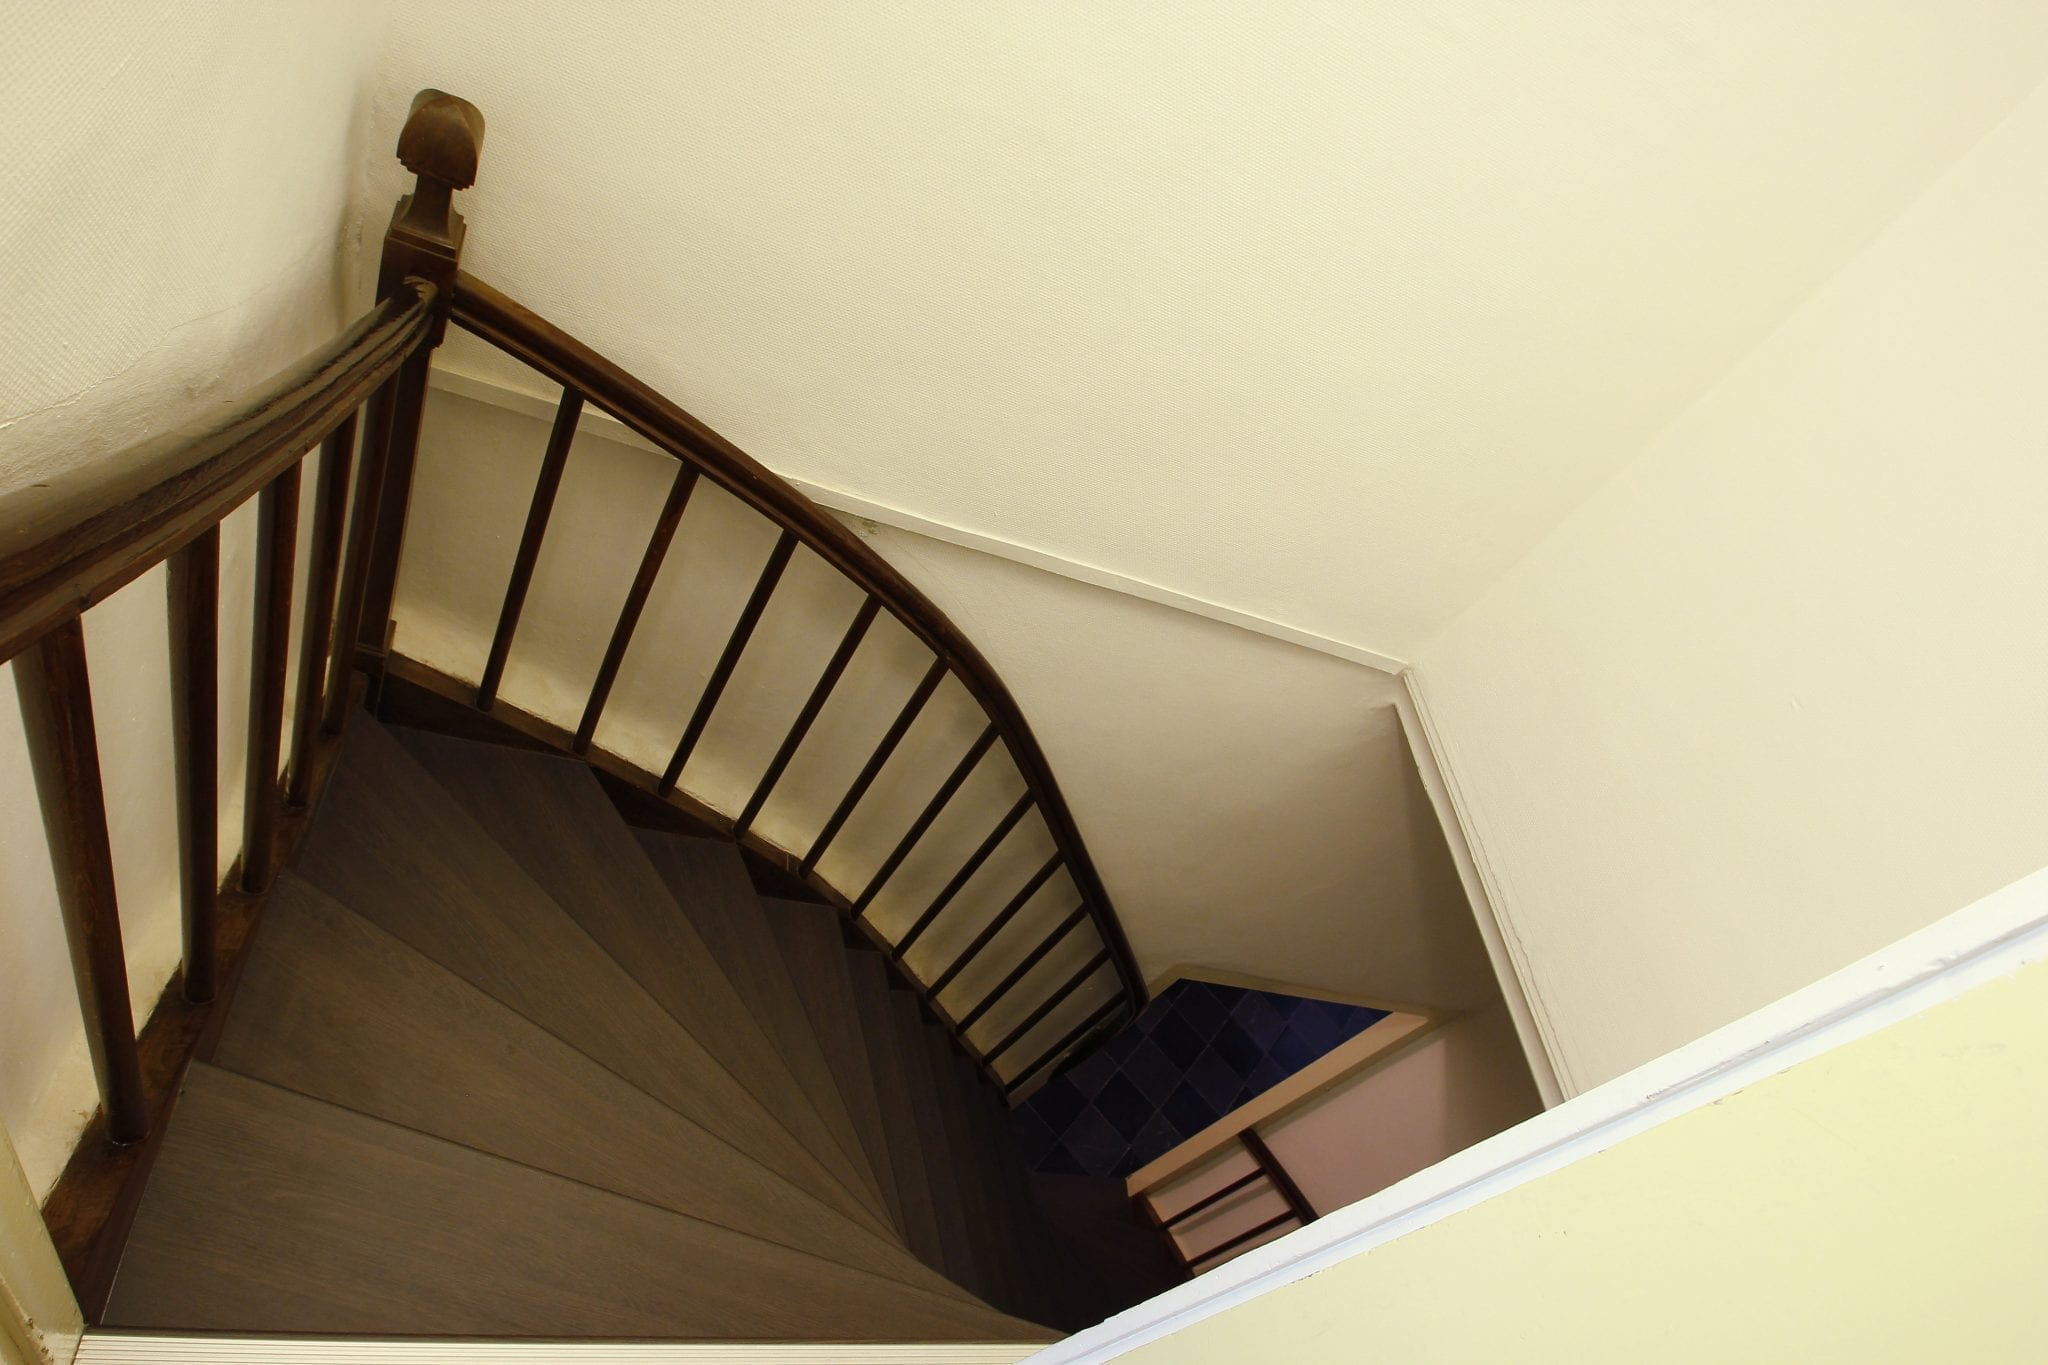 Je trap behandelen tips tricks upstairs traprenovatie - Hoe de trap houten renoveren ...